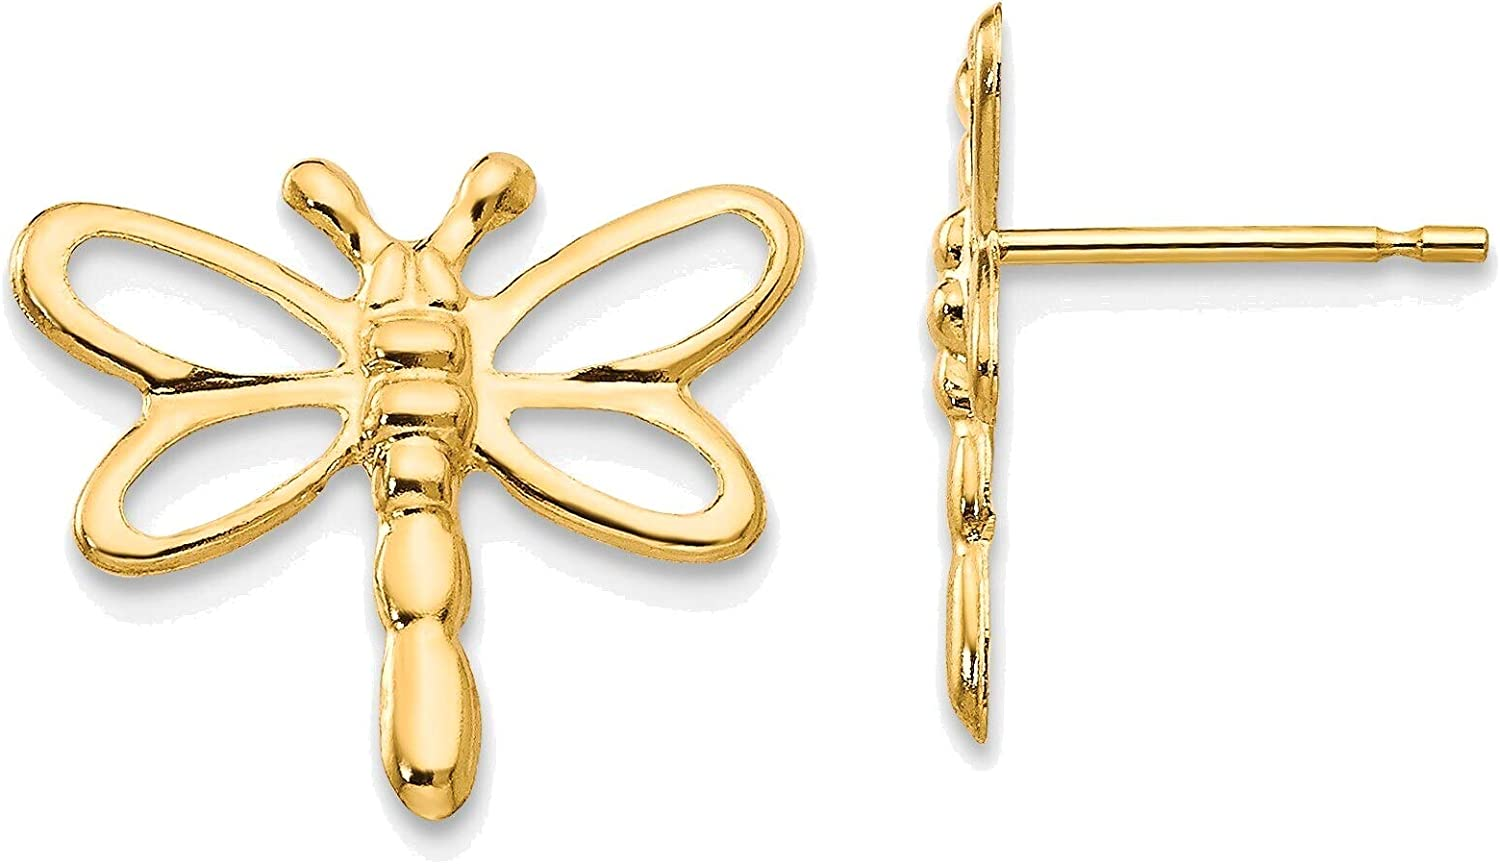 Madi K Dragonfly Post Earrings in 14K Yellow Gold